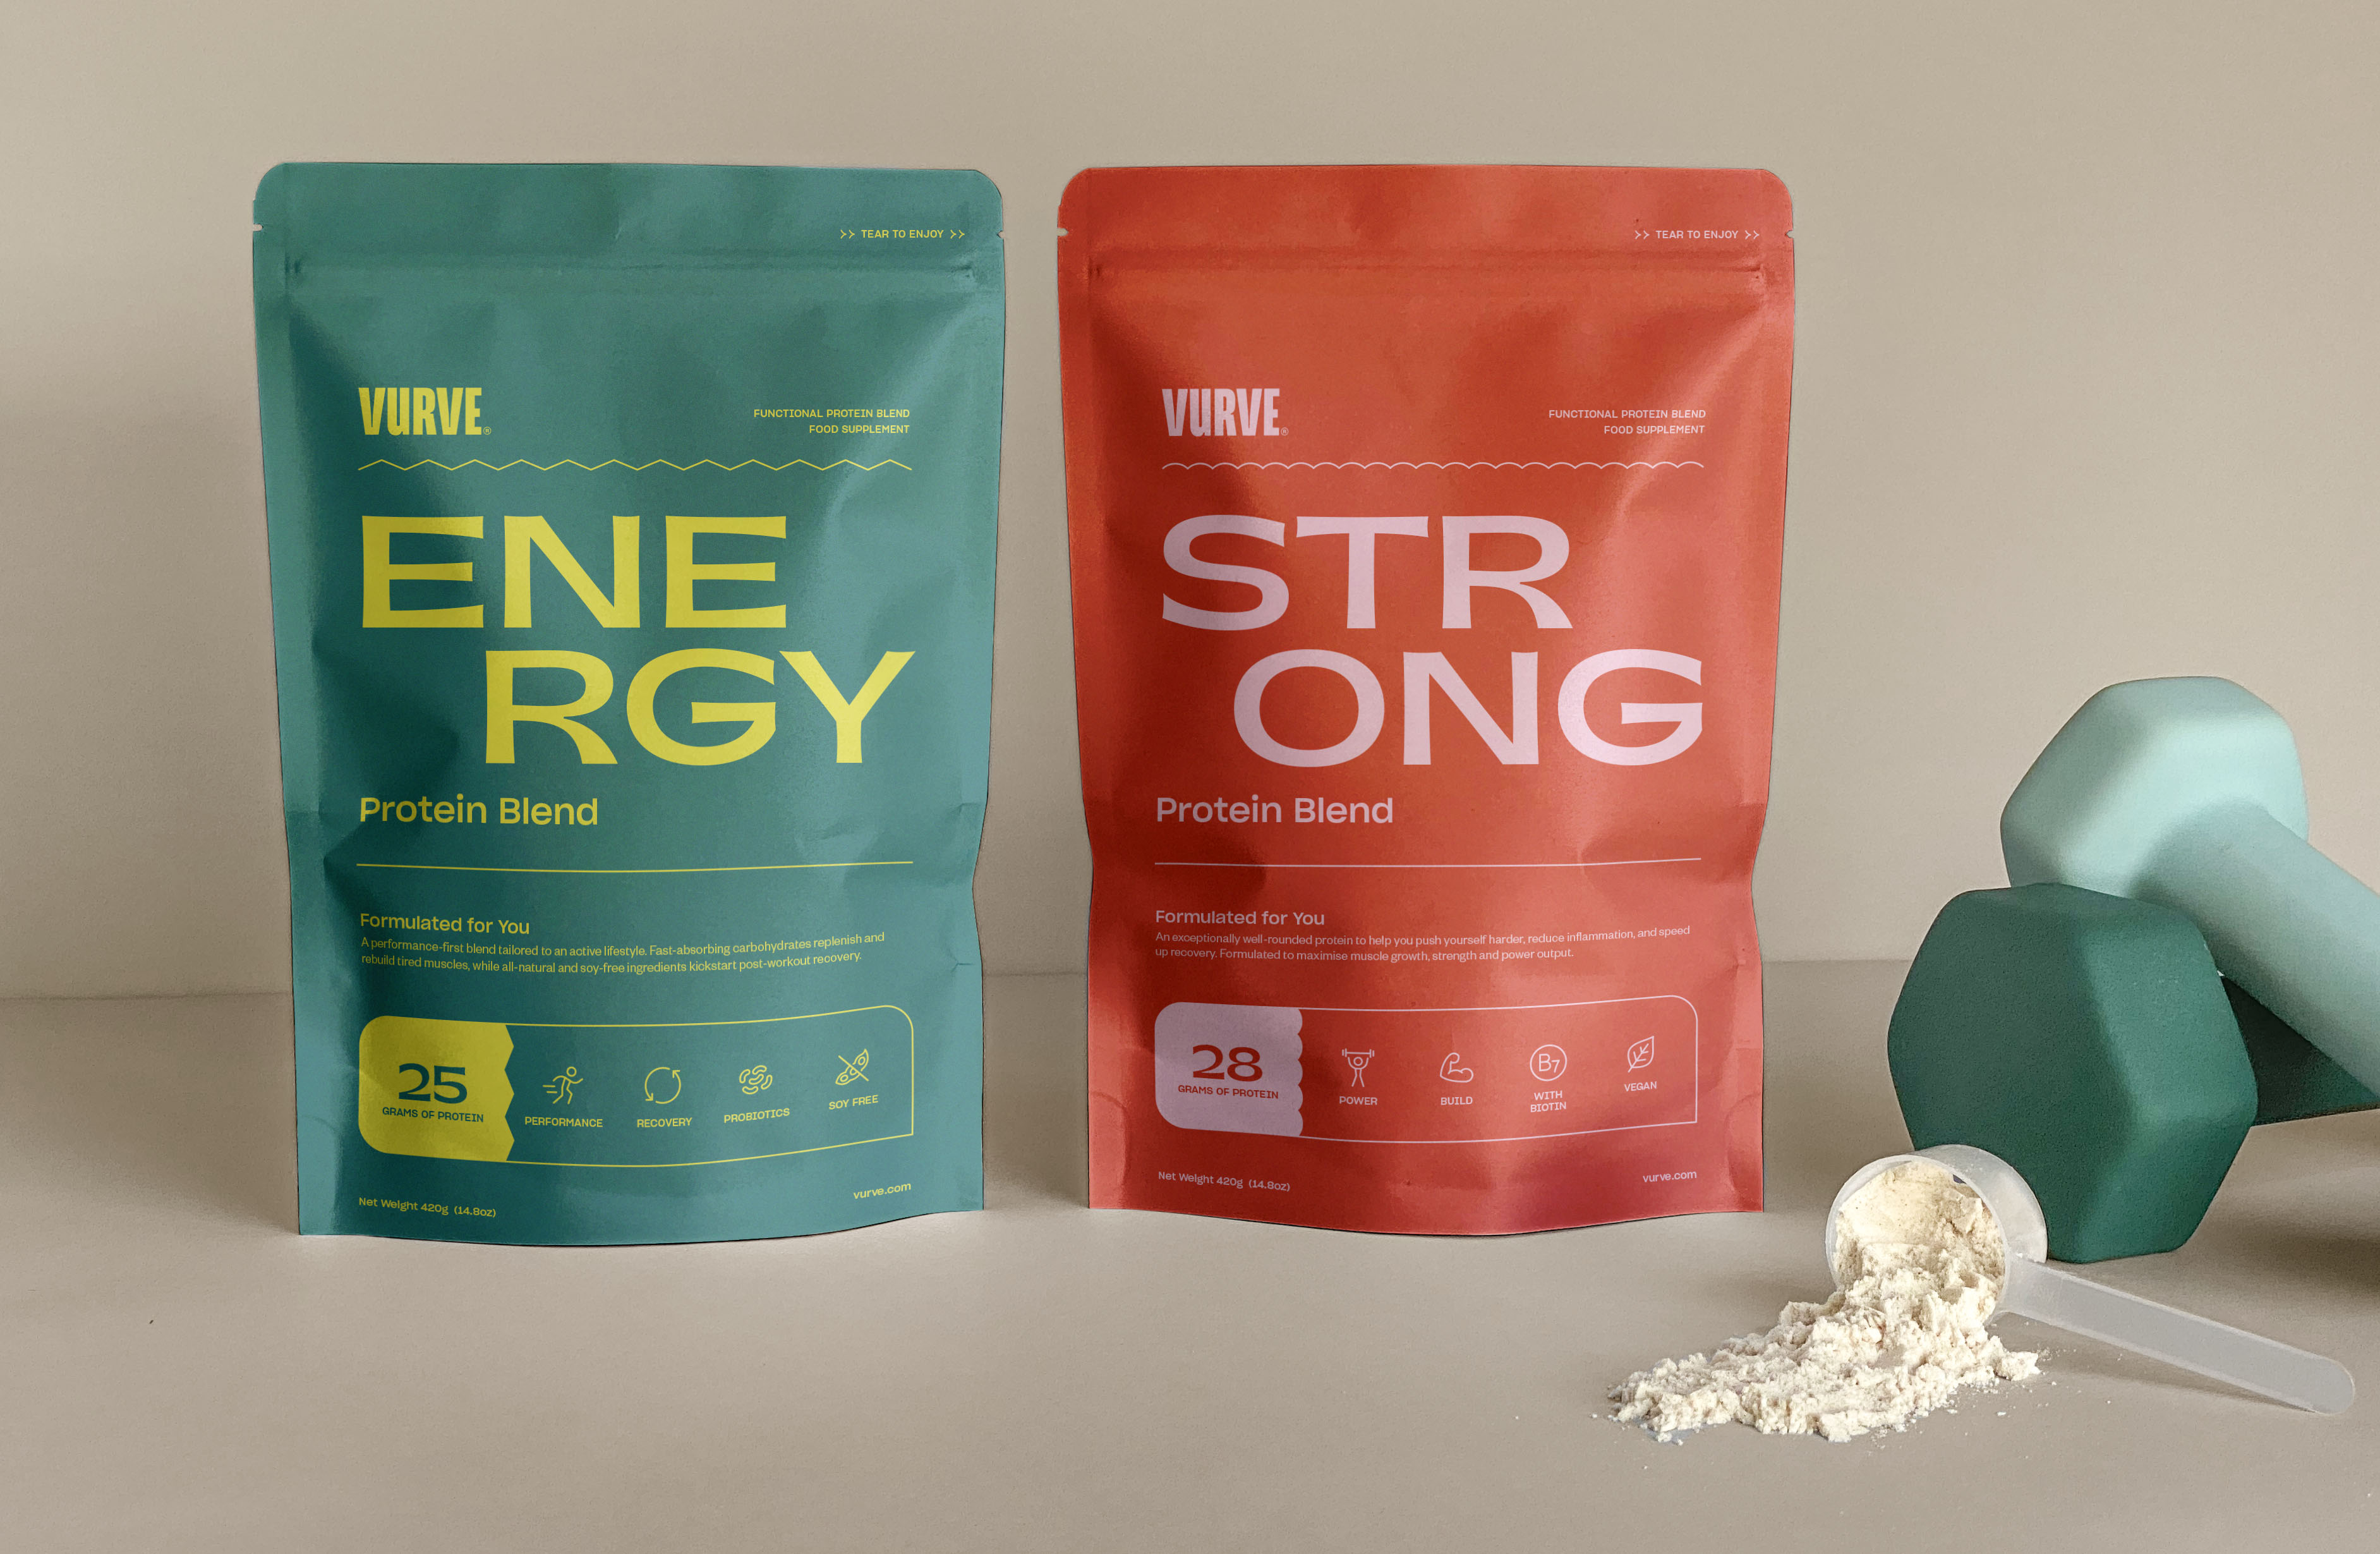 Two pouches of protein powder for women with a bold and colorful design